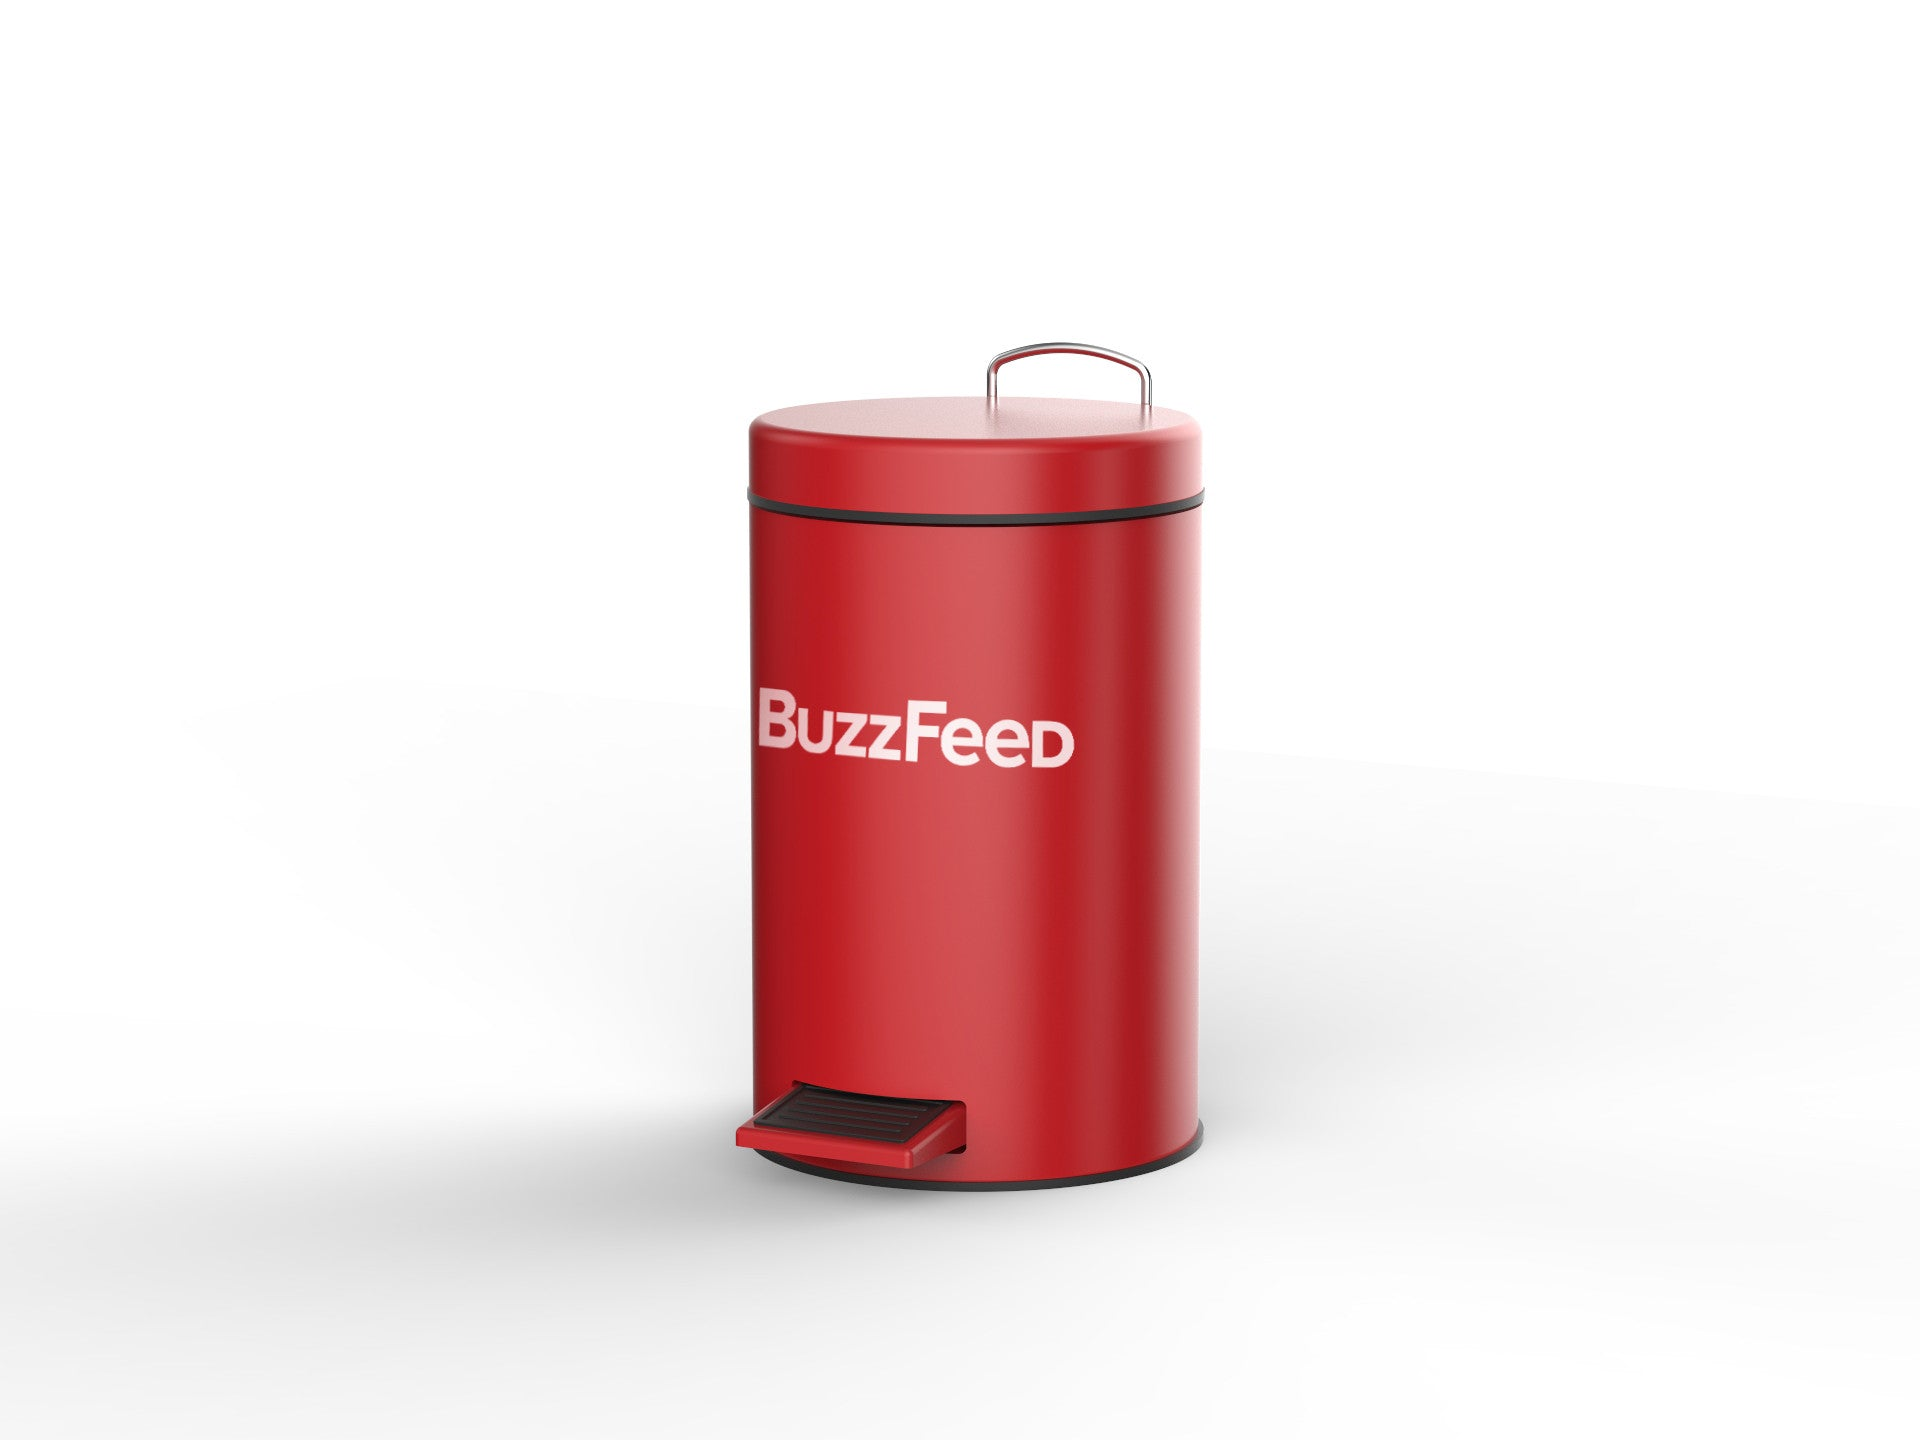 limited edition buzzfeed garbage can shop buzzfeed